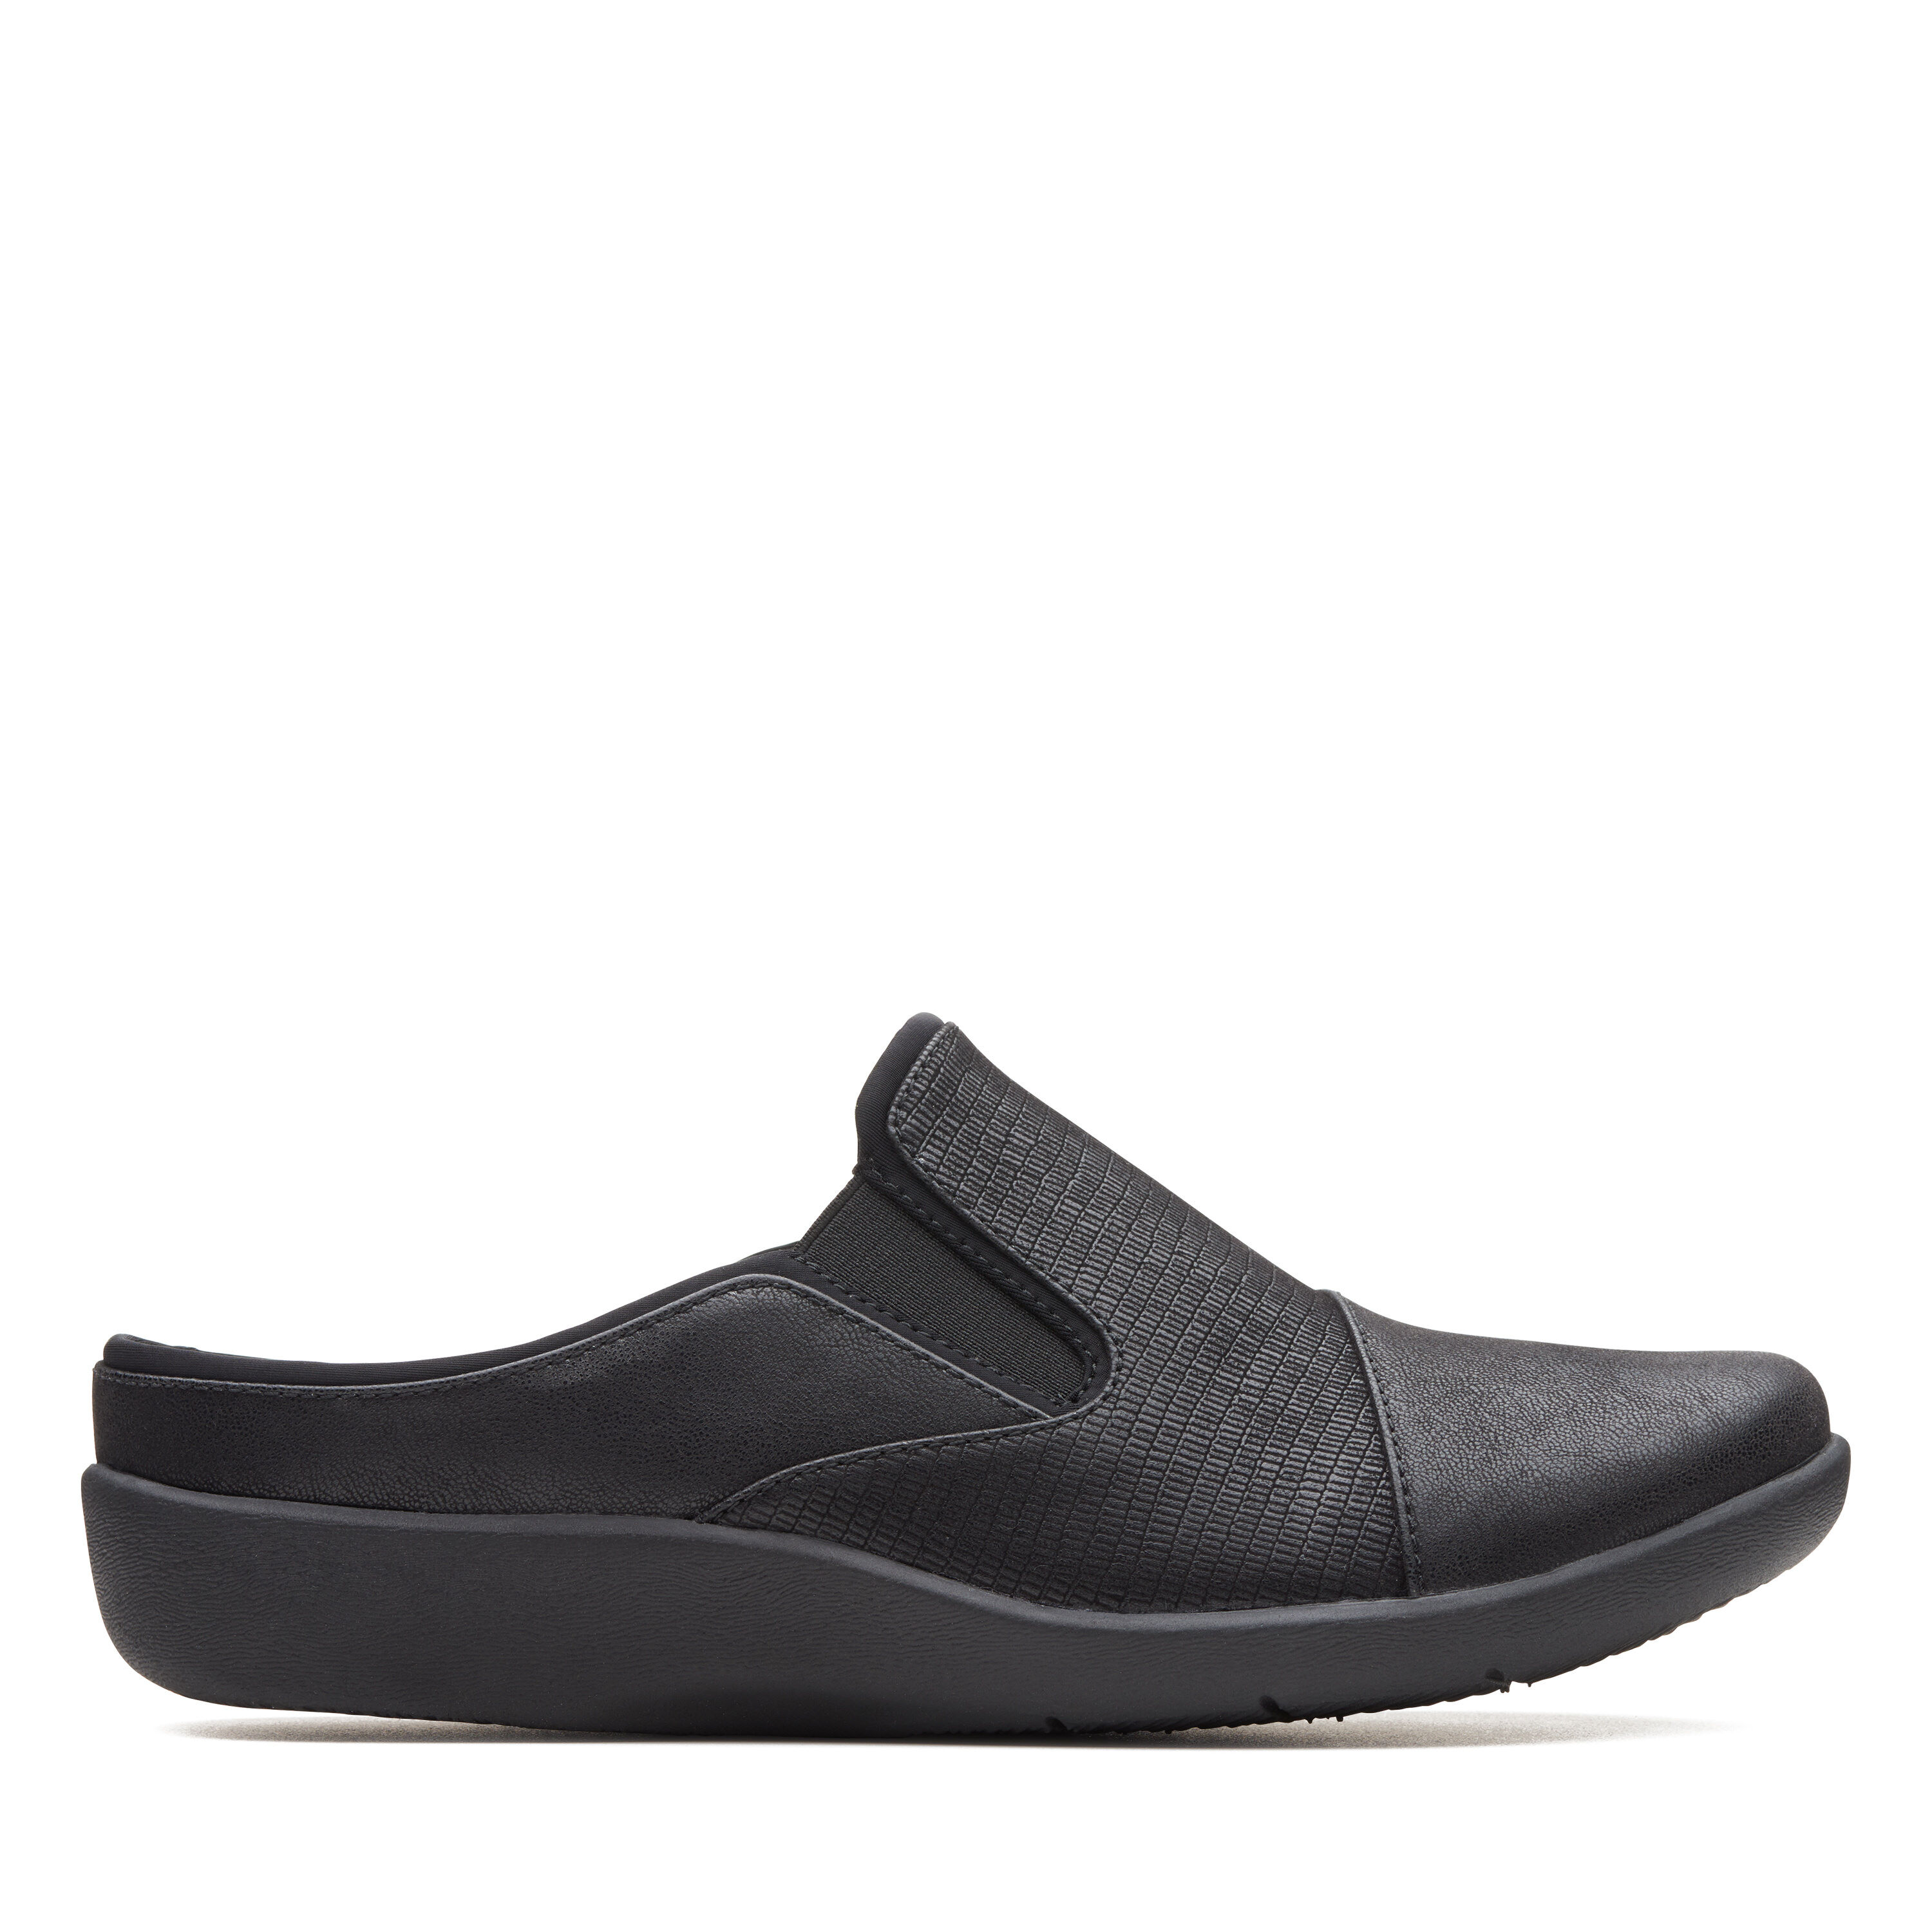 Extremely Cool Women's Clarks Sillian Free Clogs Black